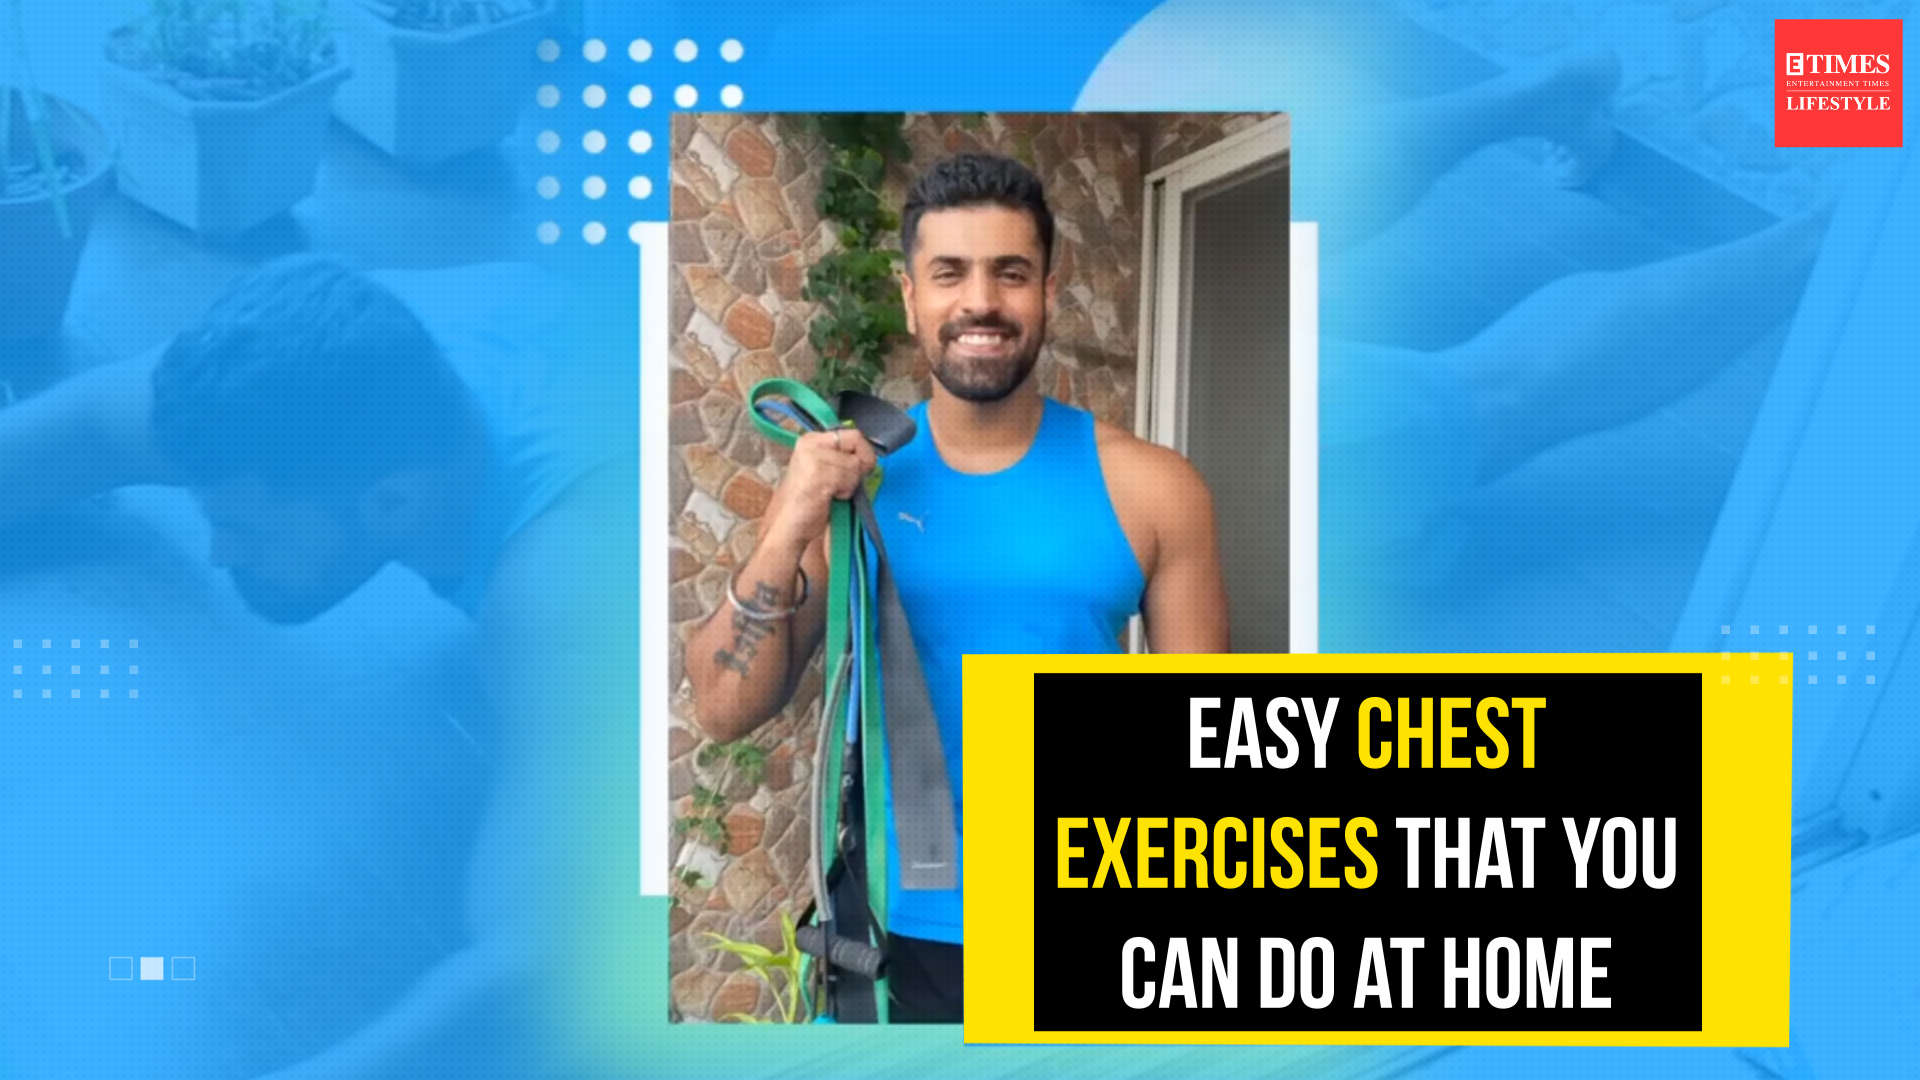 4-easy-chest-exercises-you-can-do-at-home